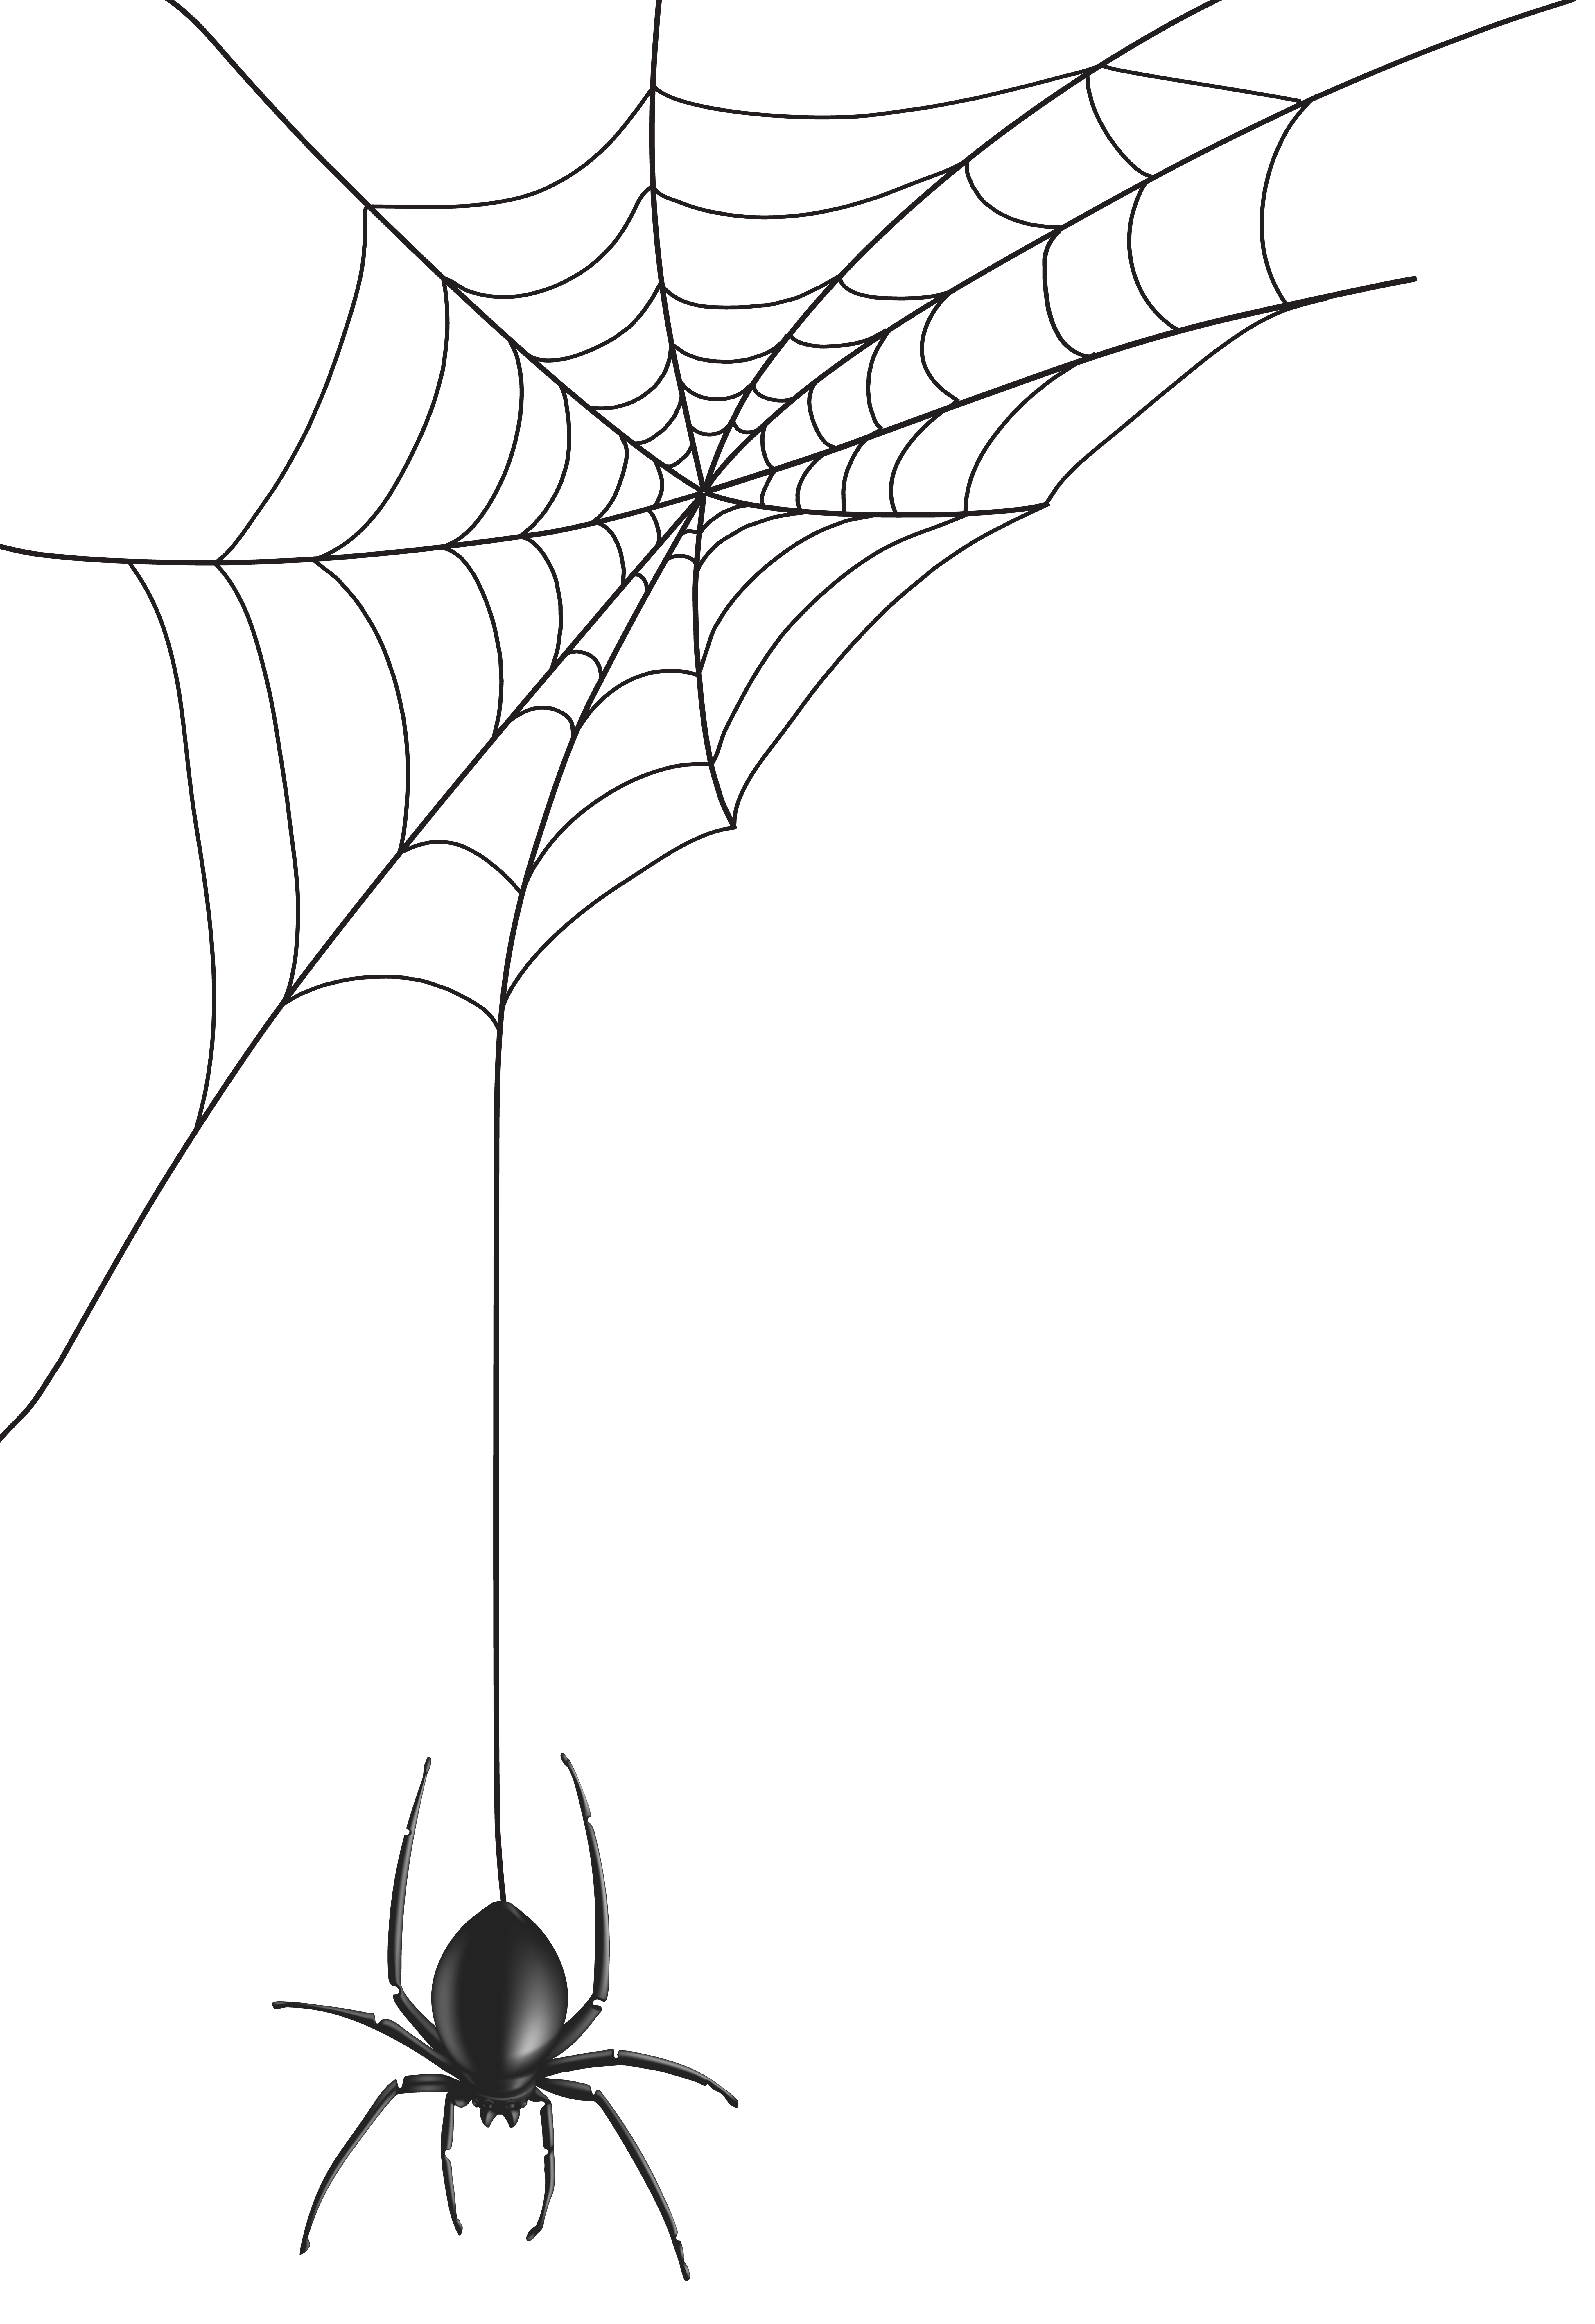 5491x8000 Spider Web Png Clip Art Imageu200b Gallery Yopriceville